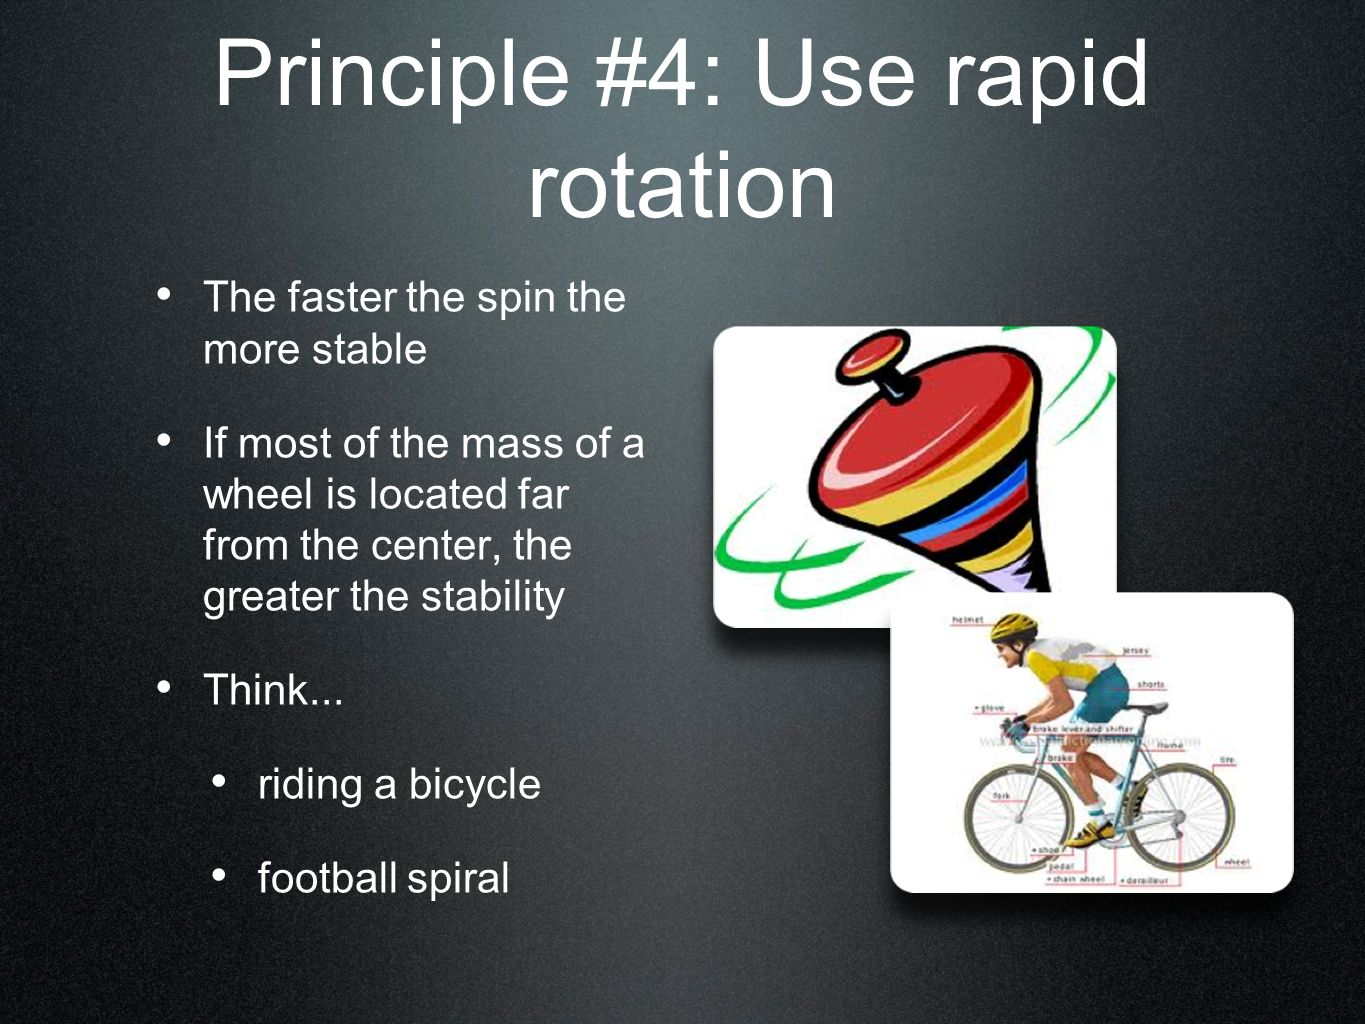 Principle #4: Use rapid rotation